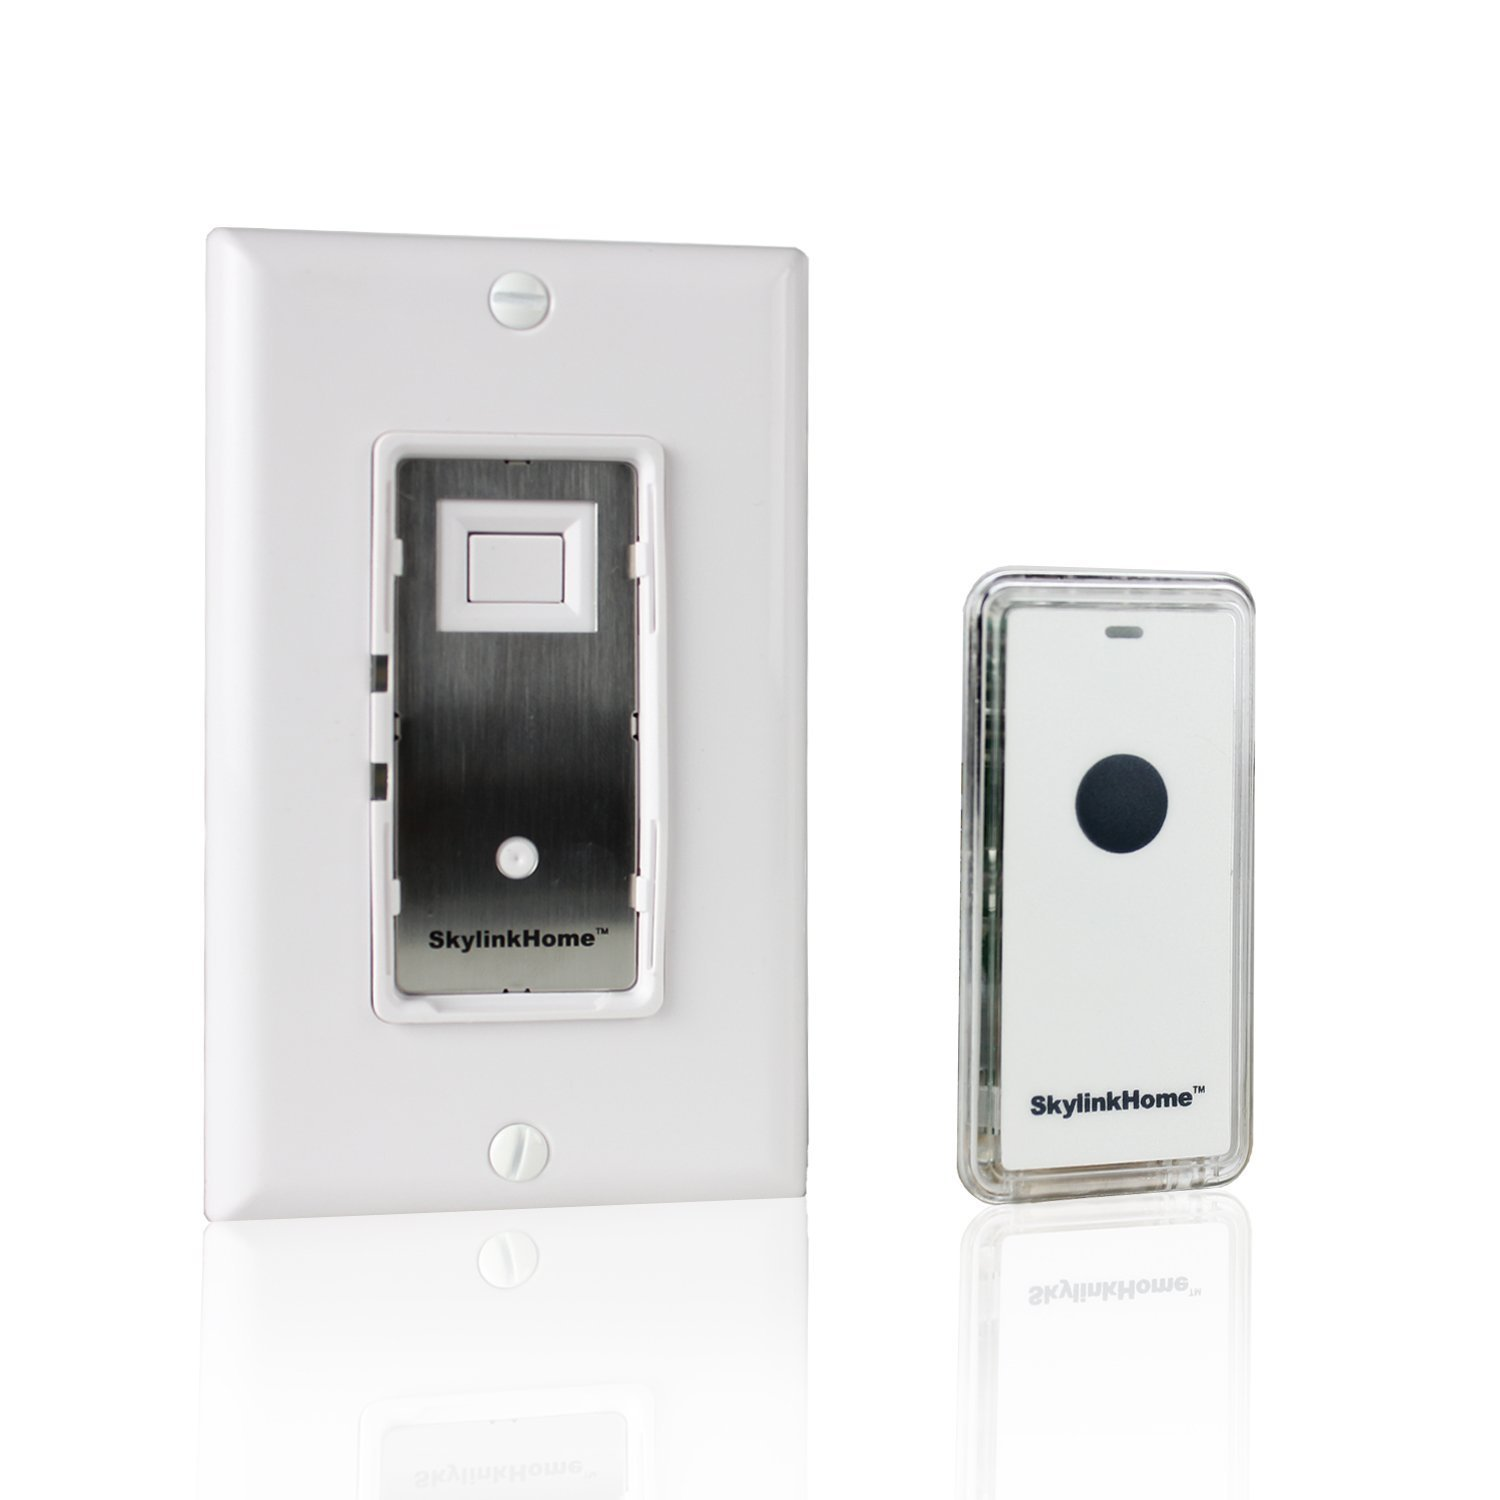 SkylinkHome WE-318 In-Wall  ON/OFF Lighting Switch Receiver with Wireless Snap On Transmitter for Home Automation and Control (1000 Watts) by Skylink